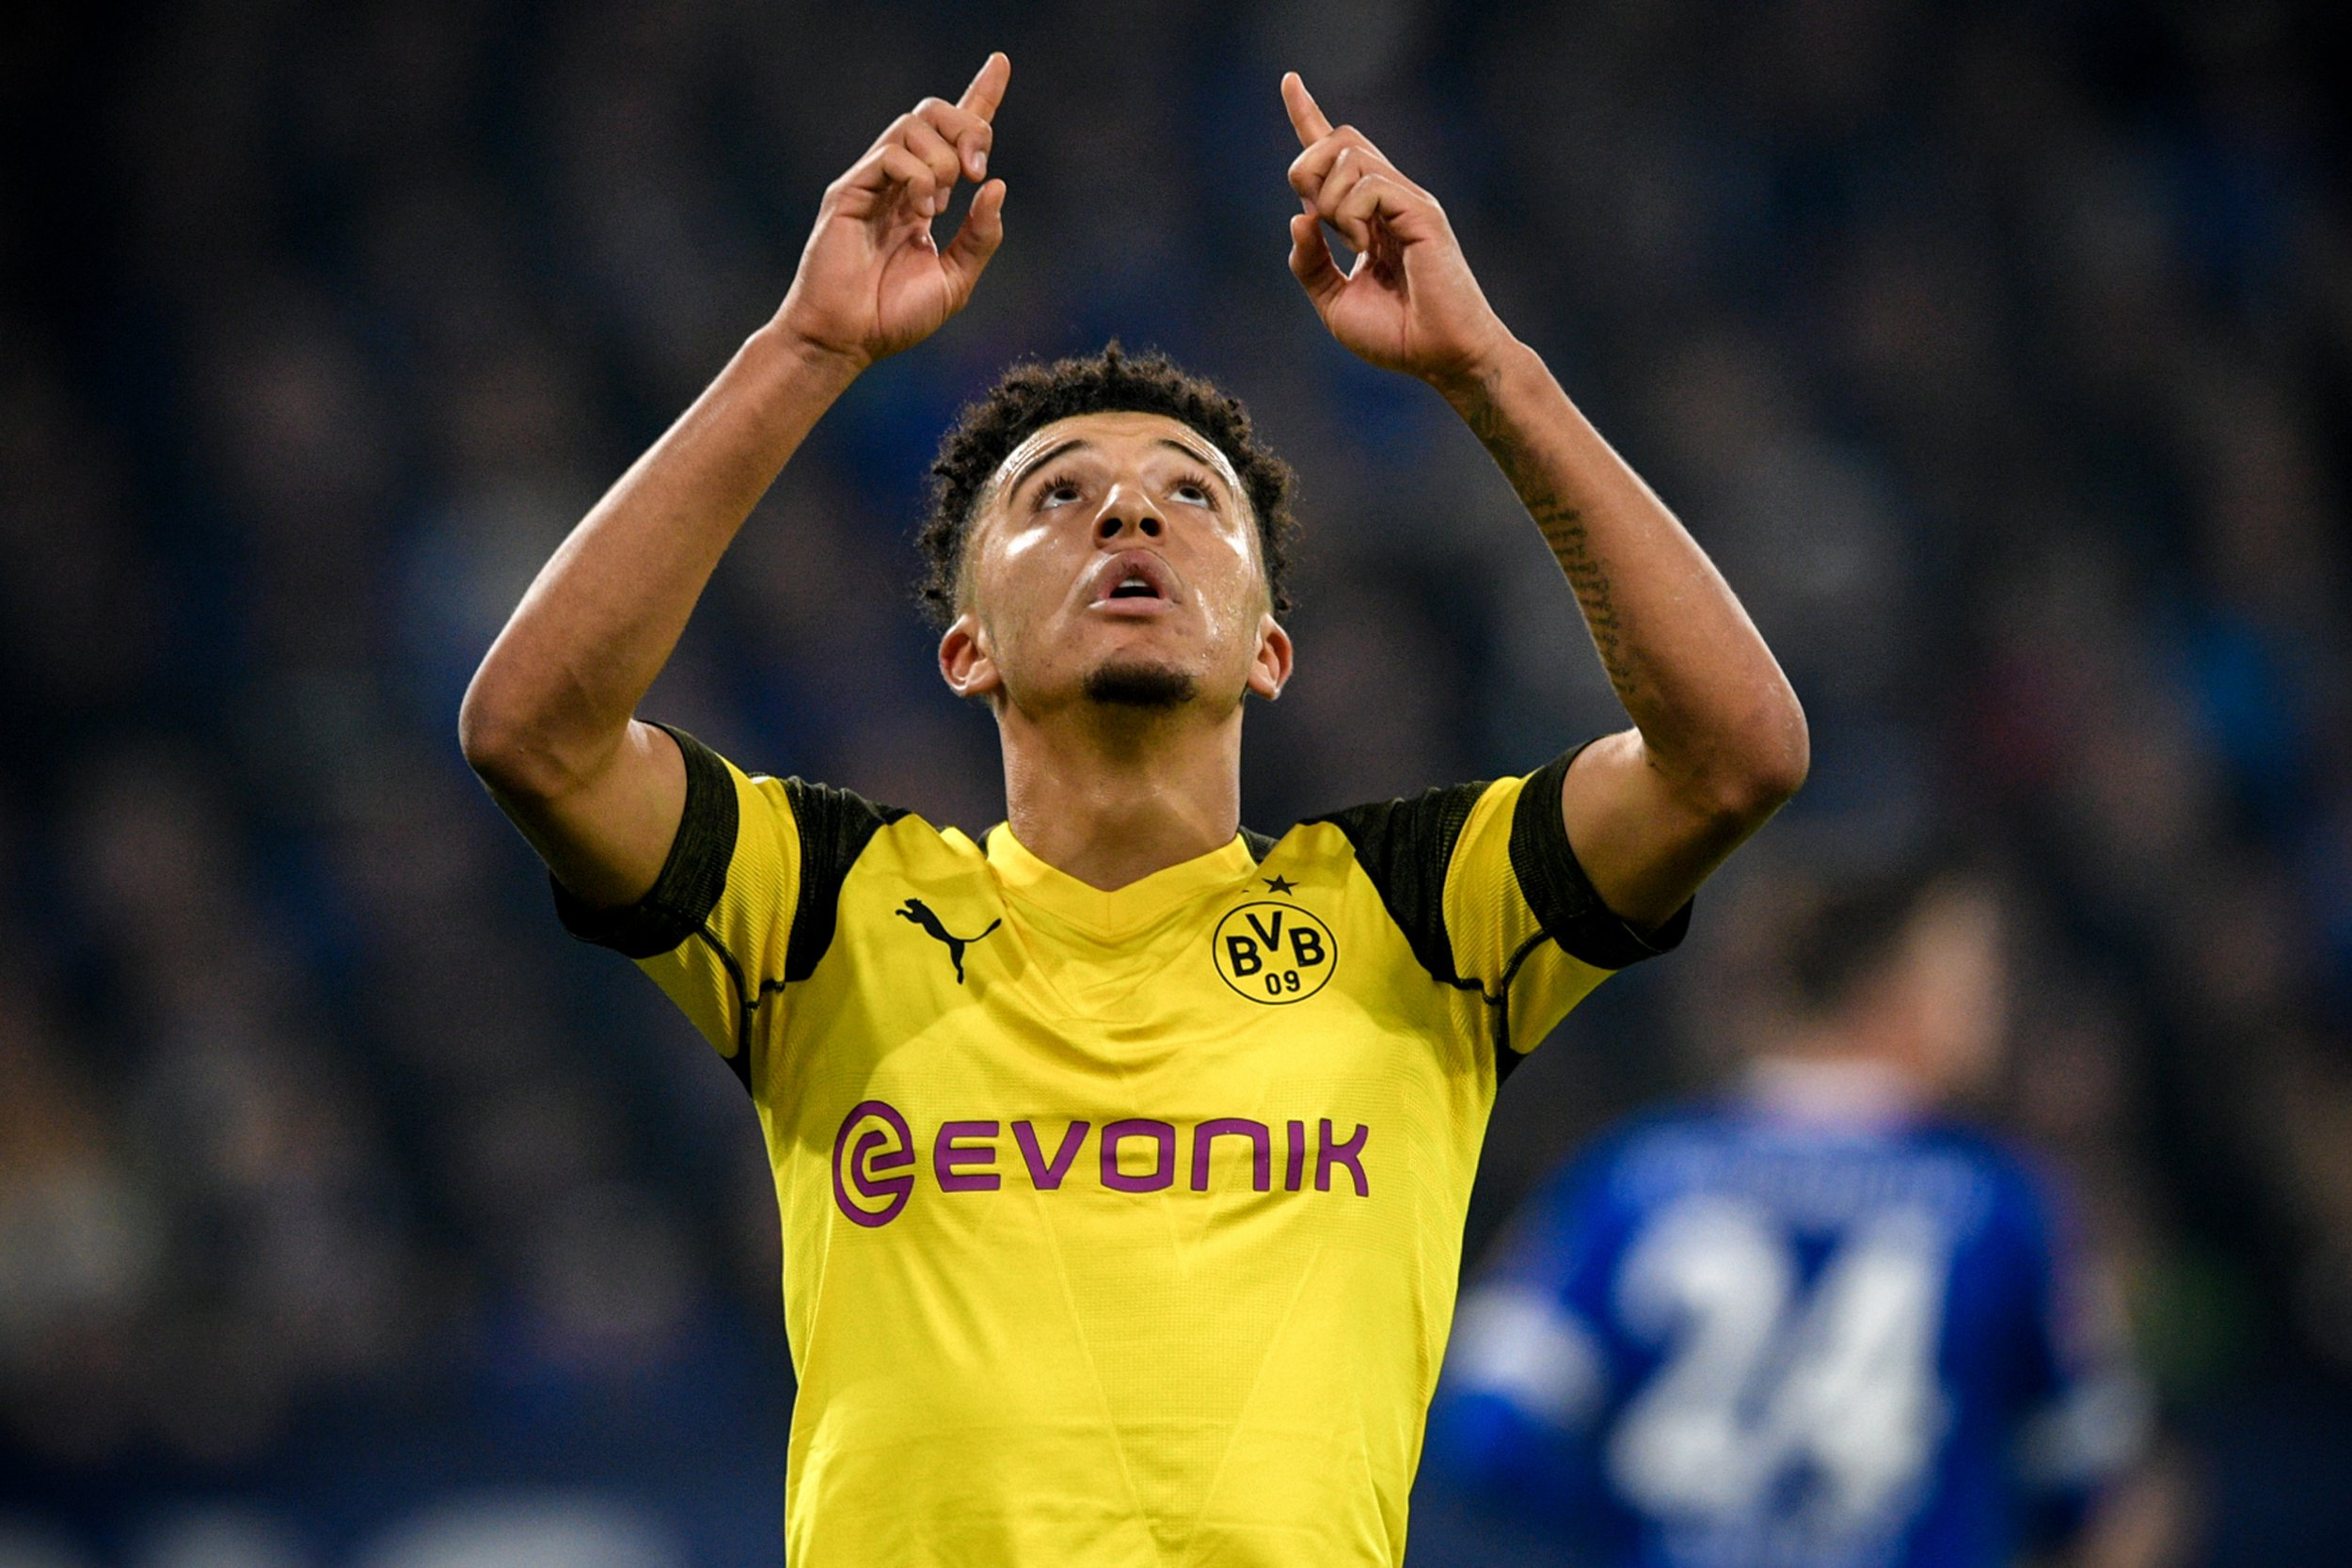 Jadon Sancho sets new Bundesliga record in Borussia Dortmund's win over Schalke